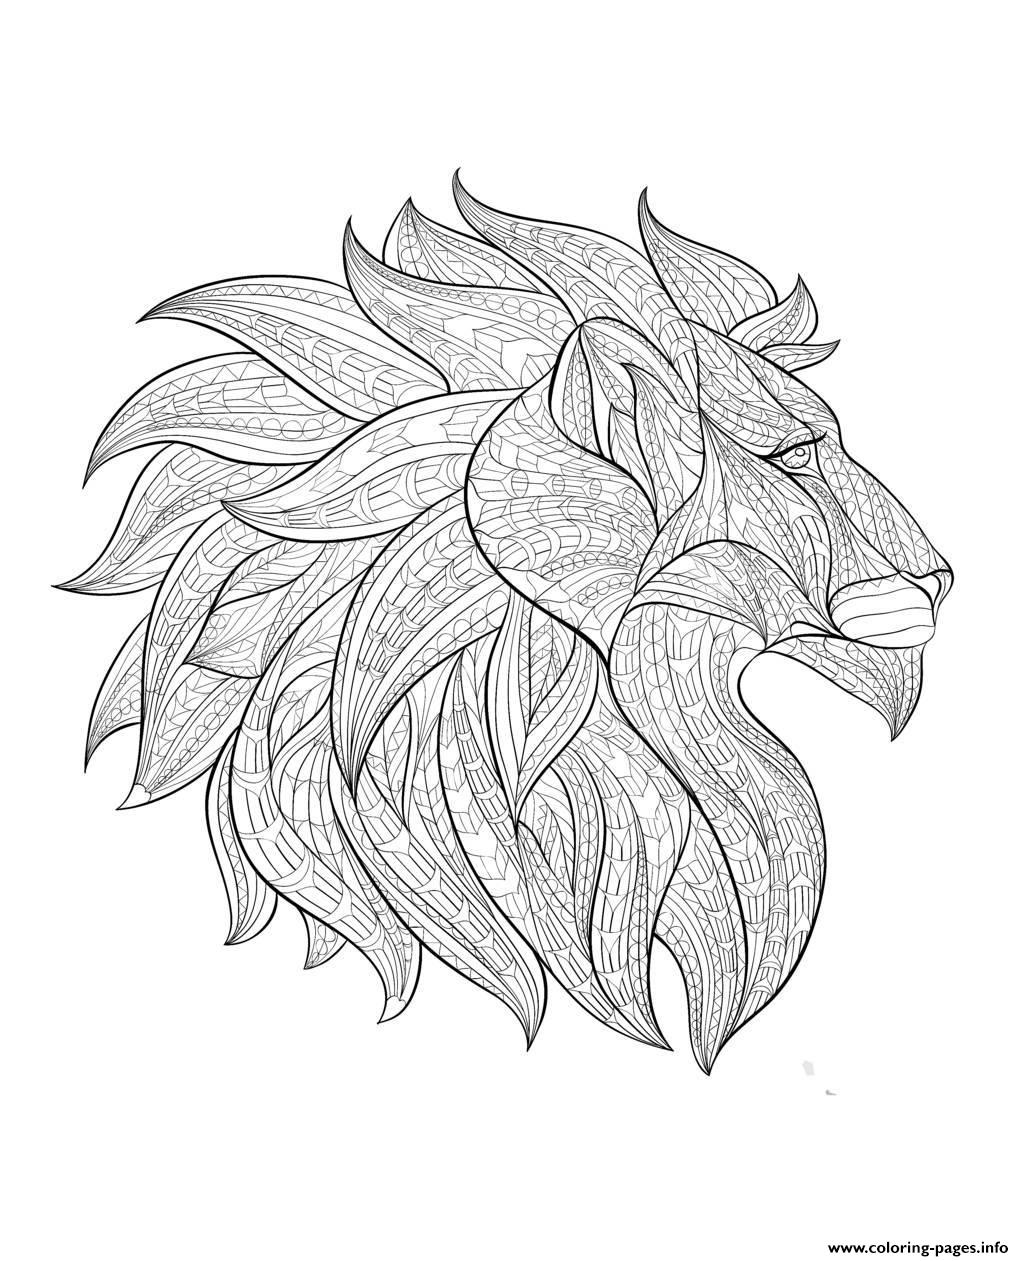 Adult Lion Head Profile Coloring Pages Print Download